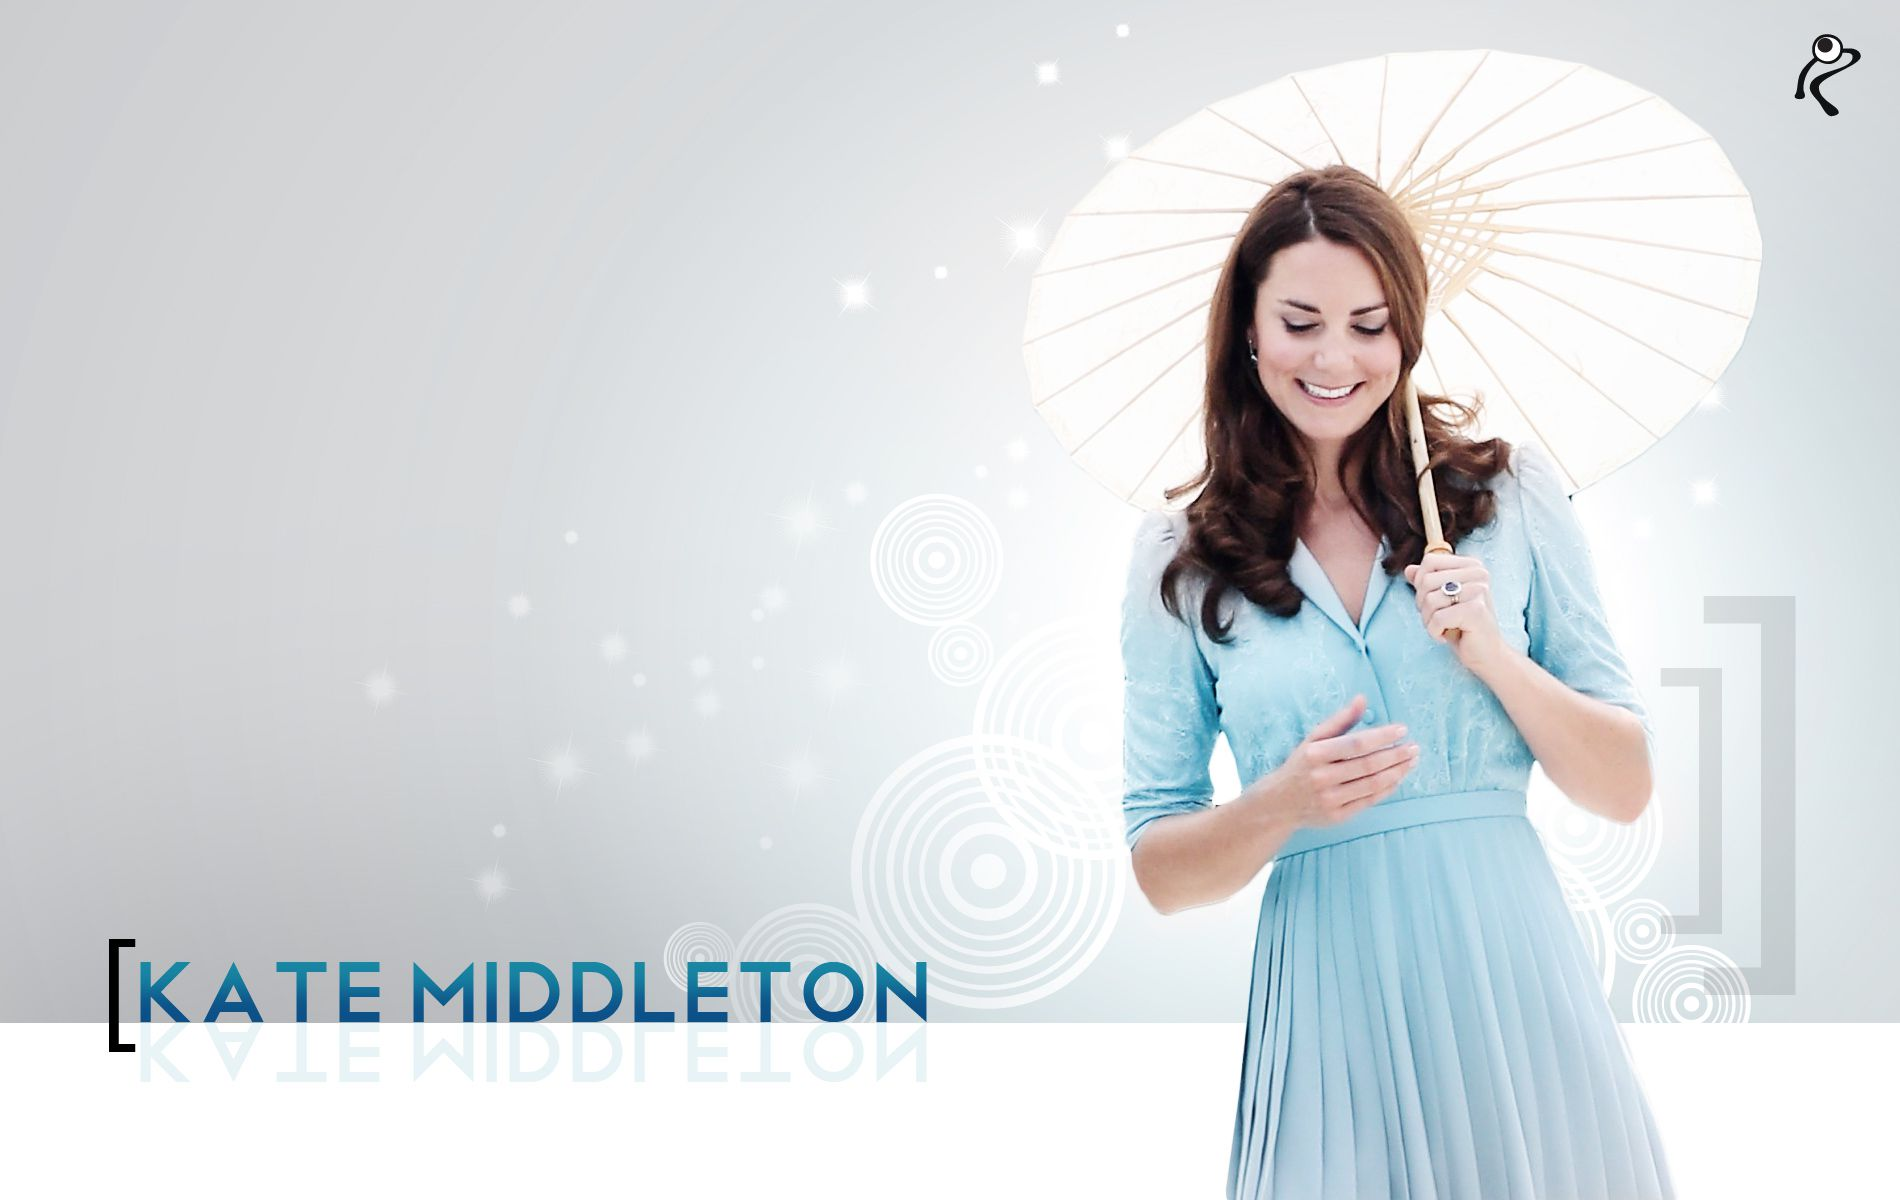 Beautiful Kate Middleton Photos Gallery CGfrog 1900x1200